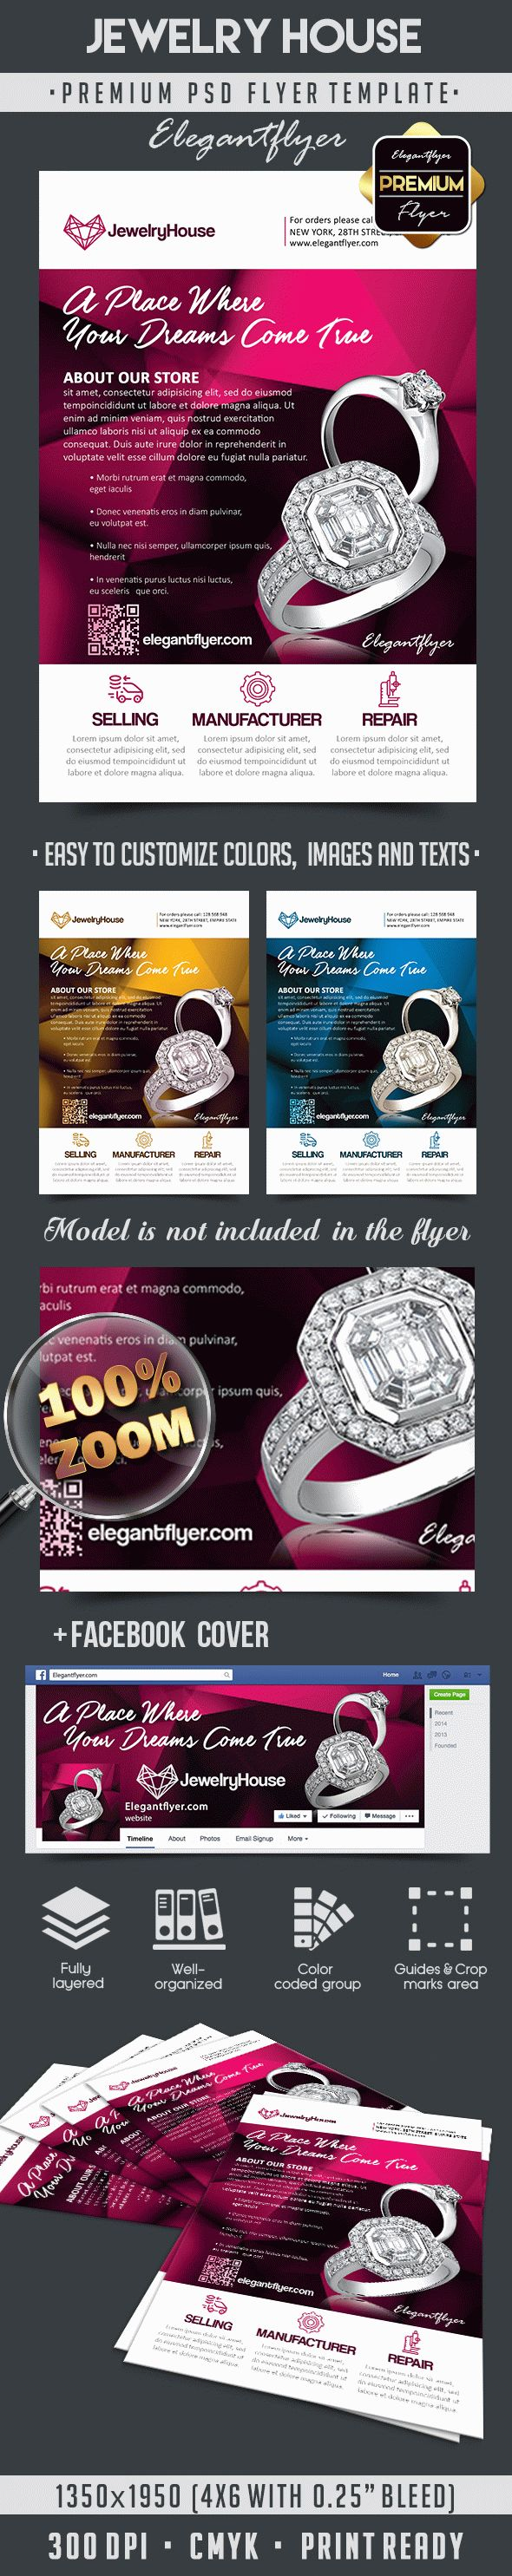 Jewelry House Flyer Psd Template By Elegantflyer